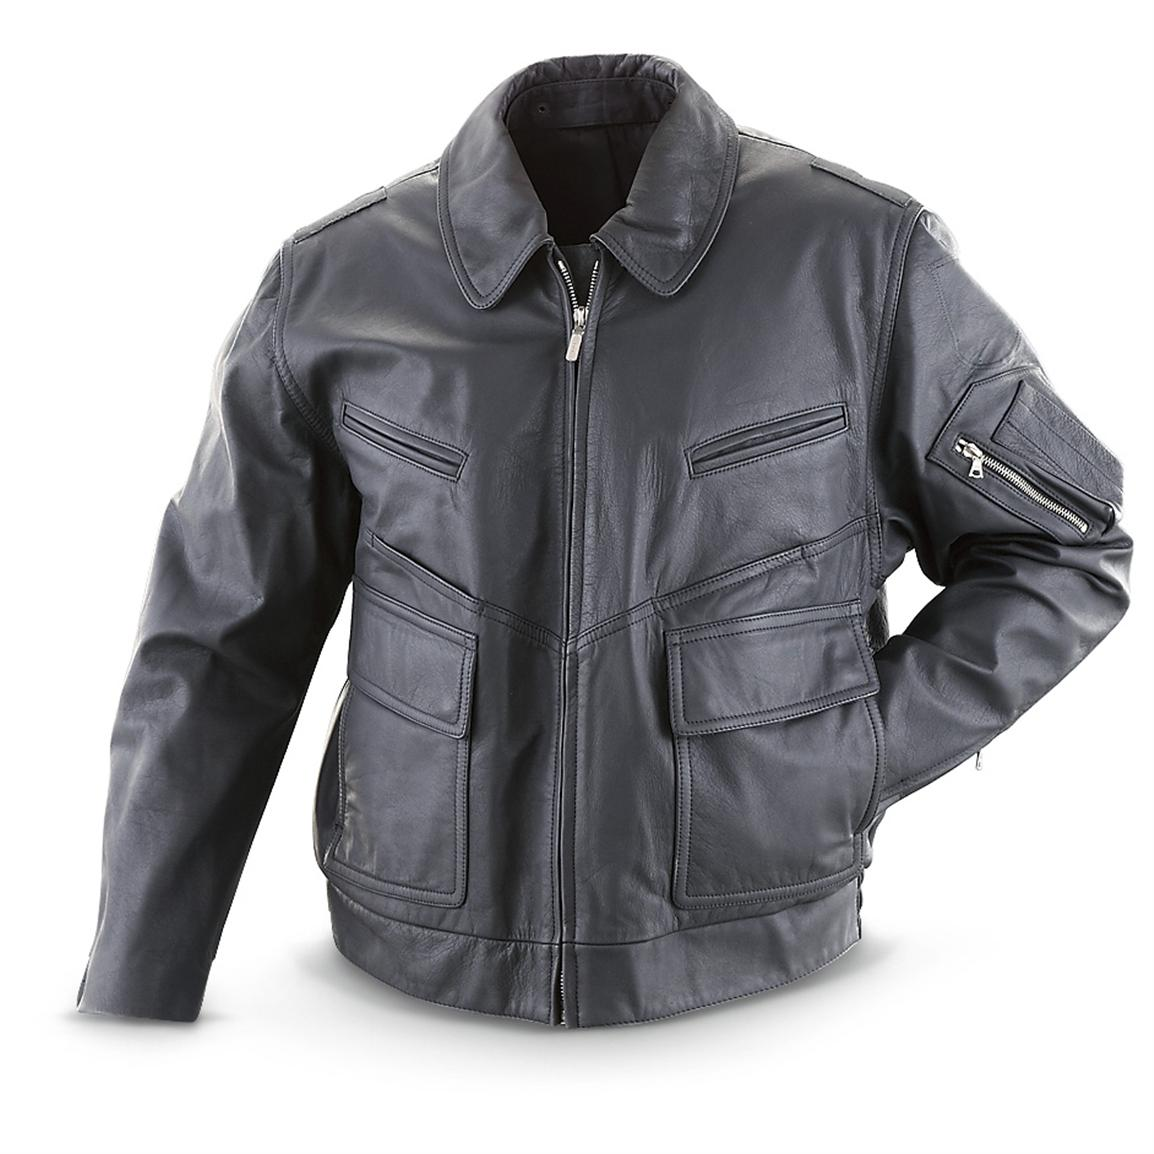 Women's Used German Police Leather Jacket